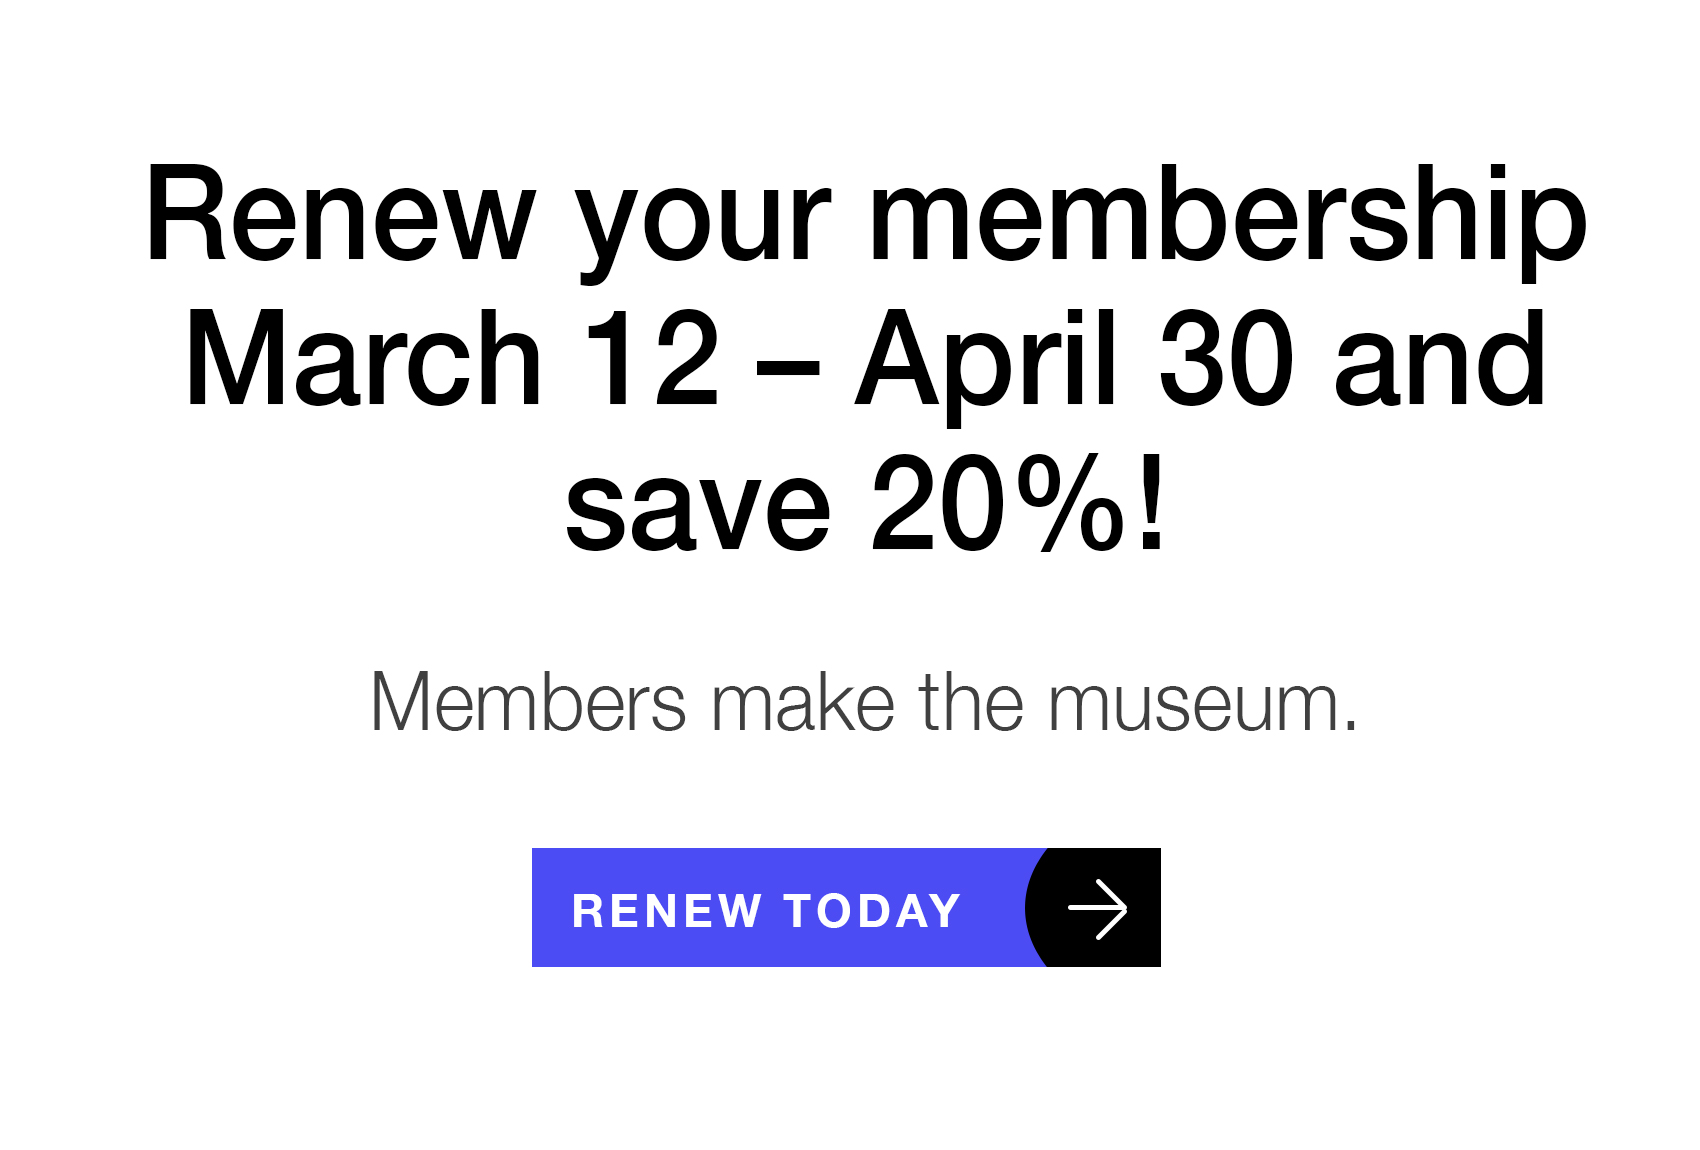 Renew your Membership March 12 – April 30 and save 20%! Members make the museum. Renew today.